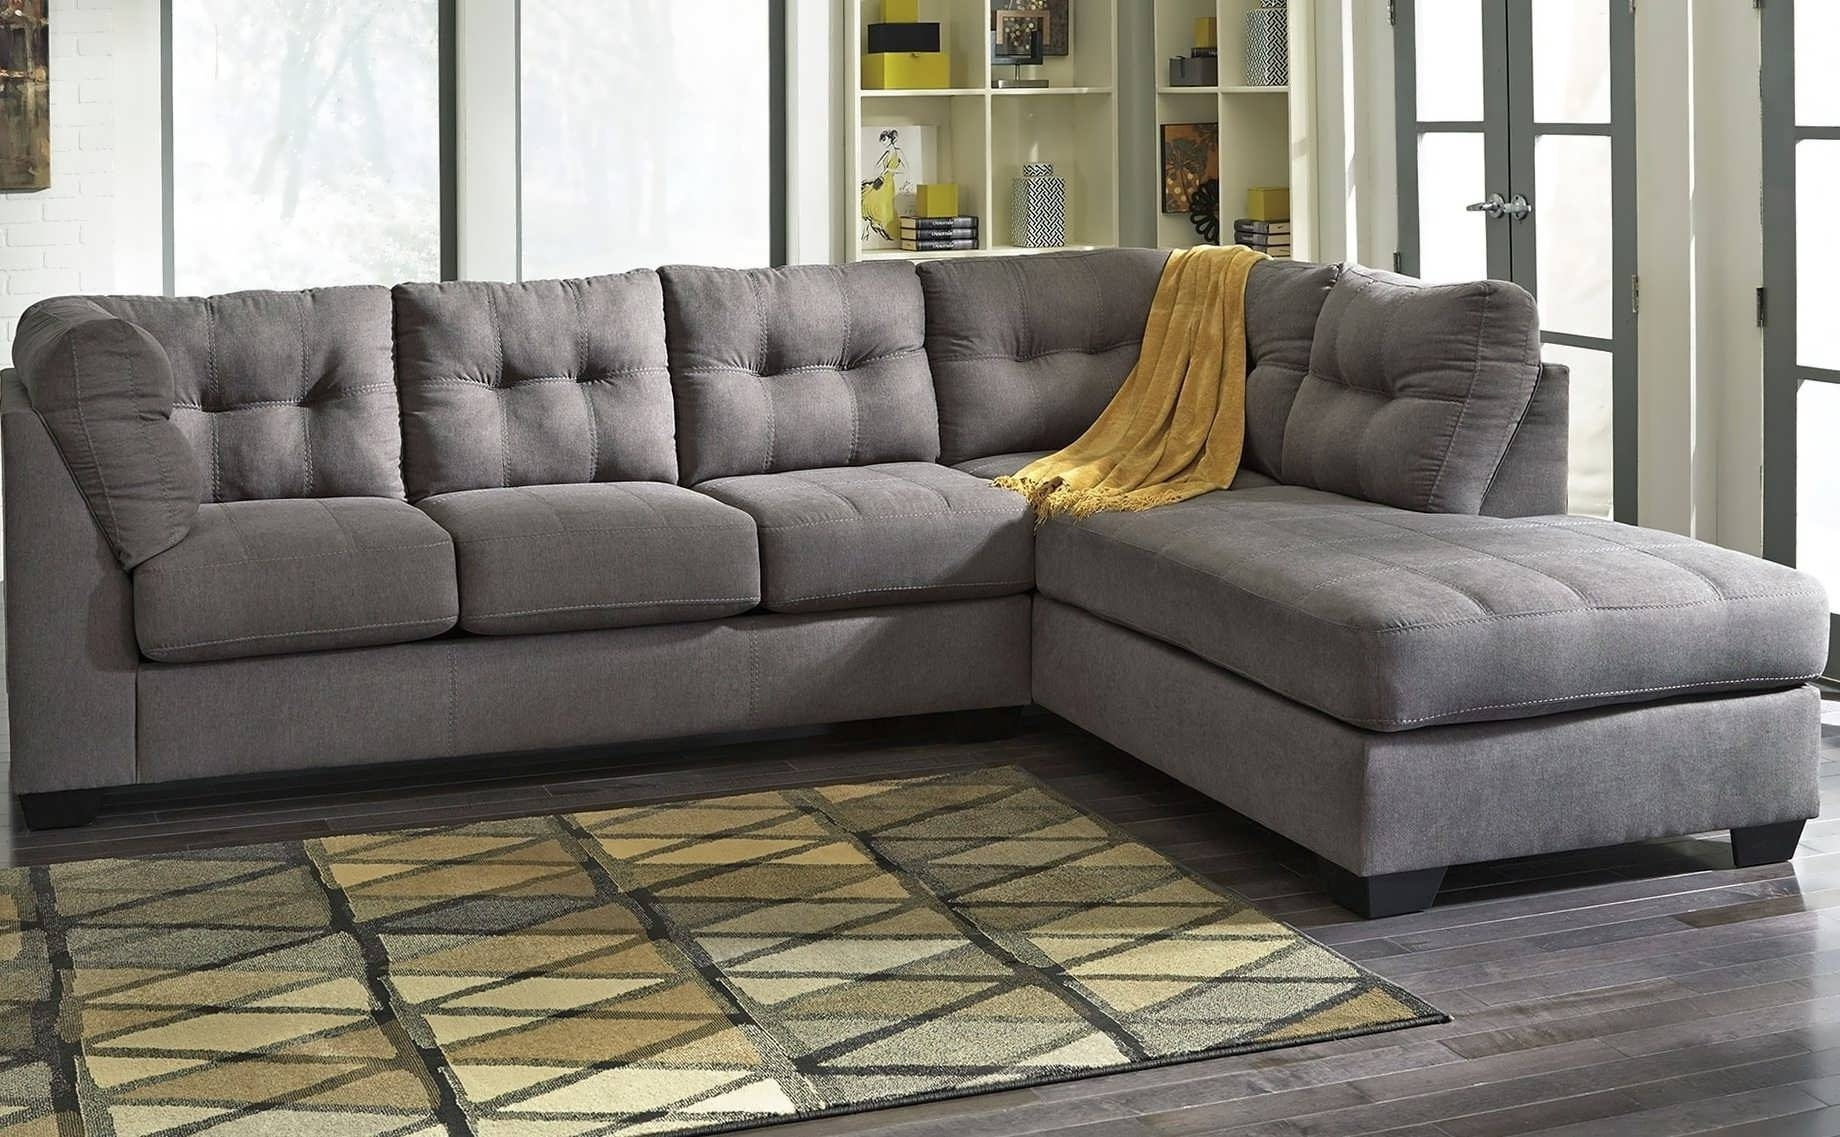 Gray Chaise Sofas Within Most Popular Sofa : Gray Sectional Sleeper Sectional Oversized Sectionals Grey (View 6 of 15)